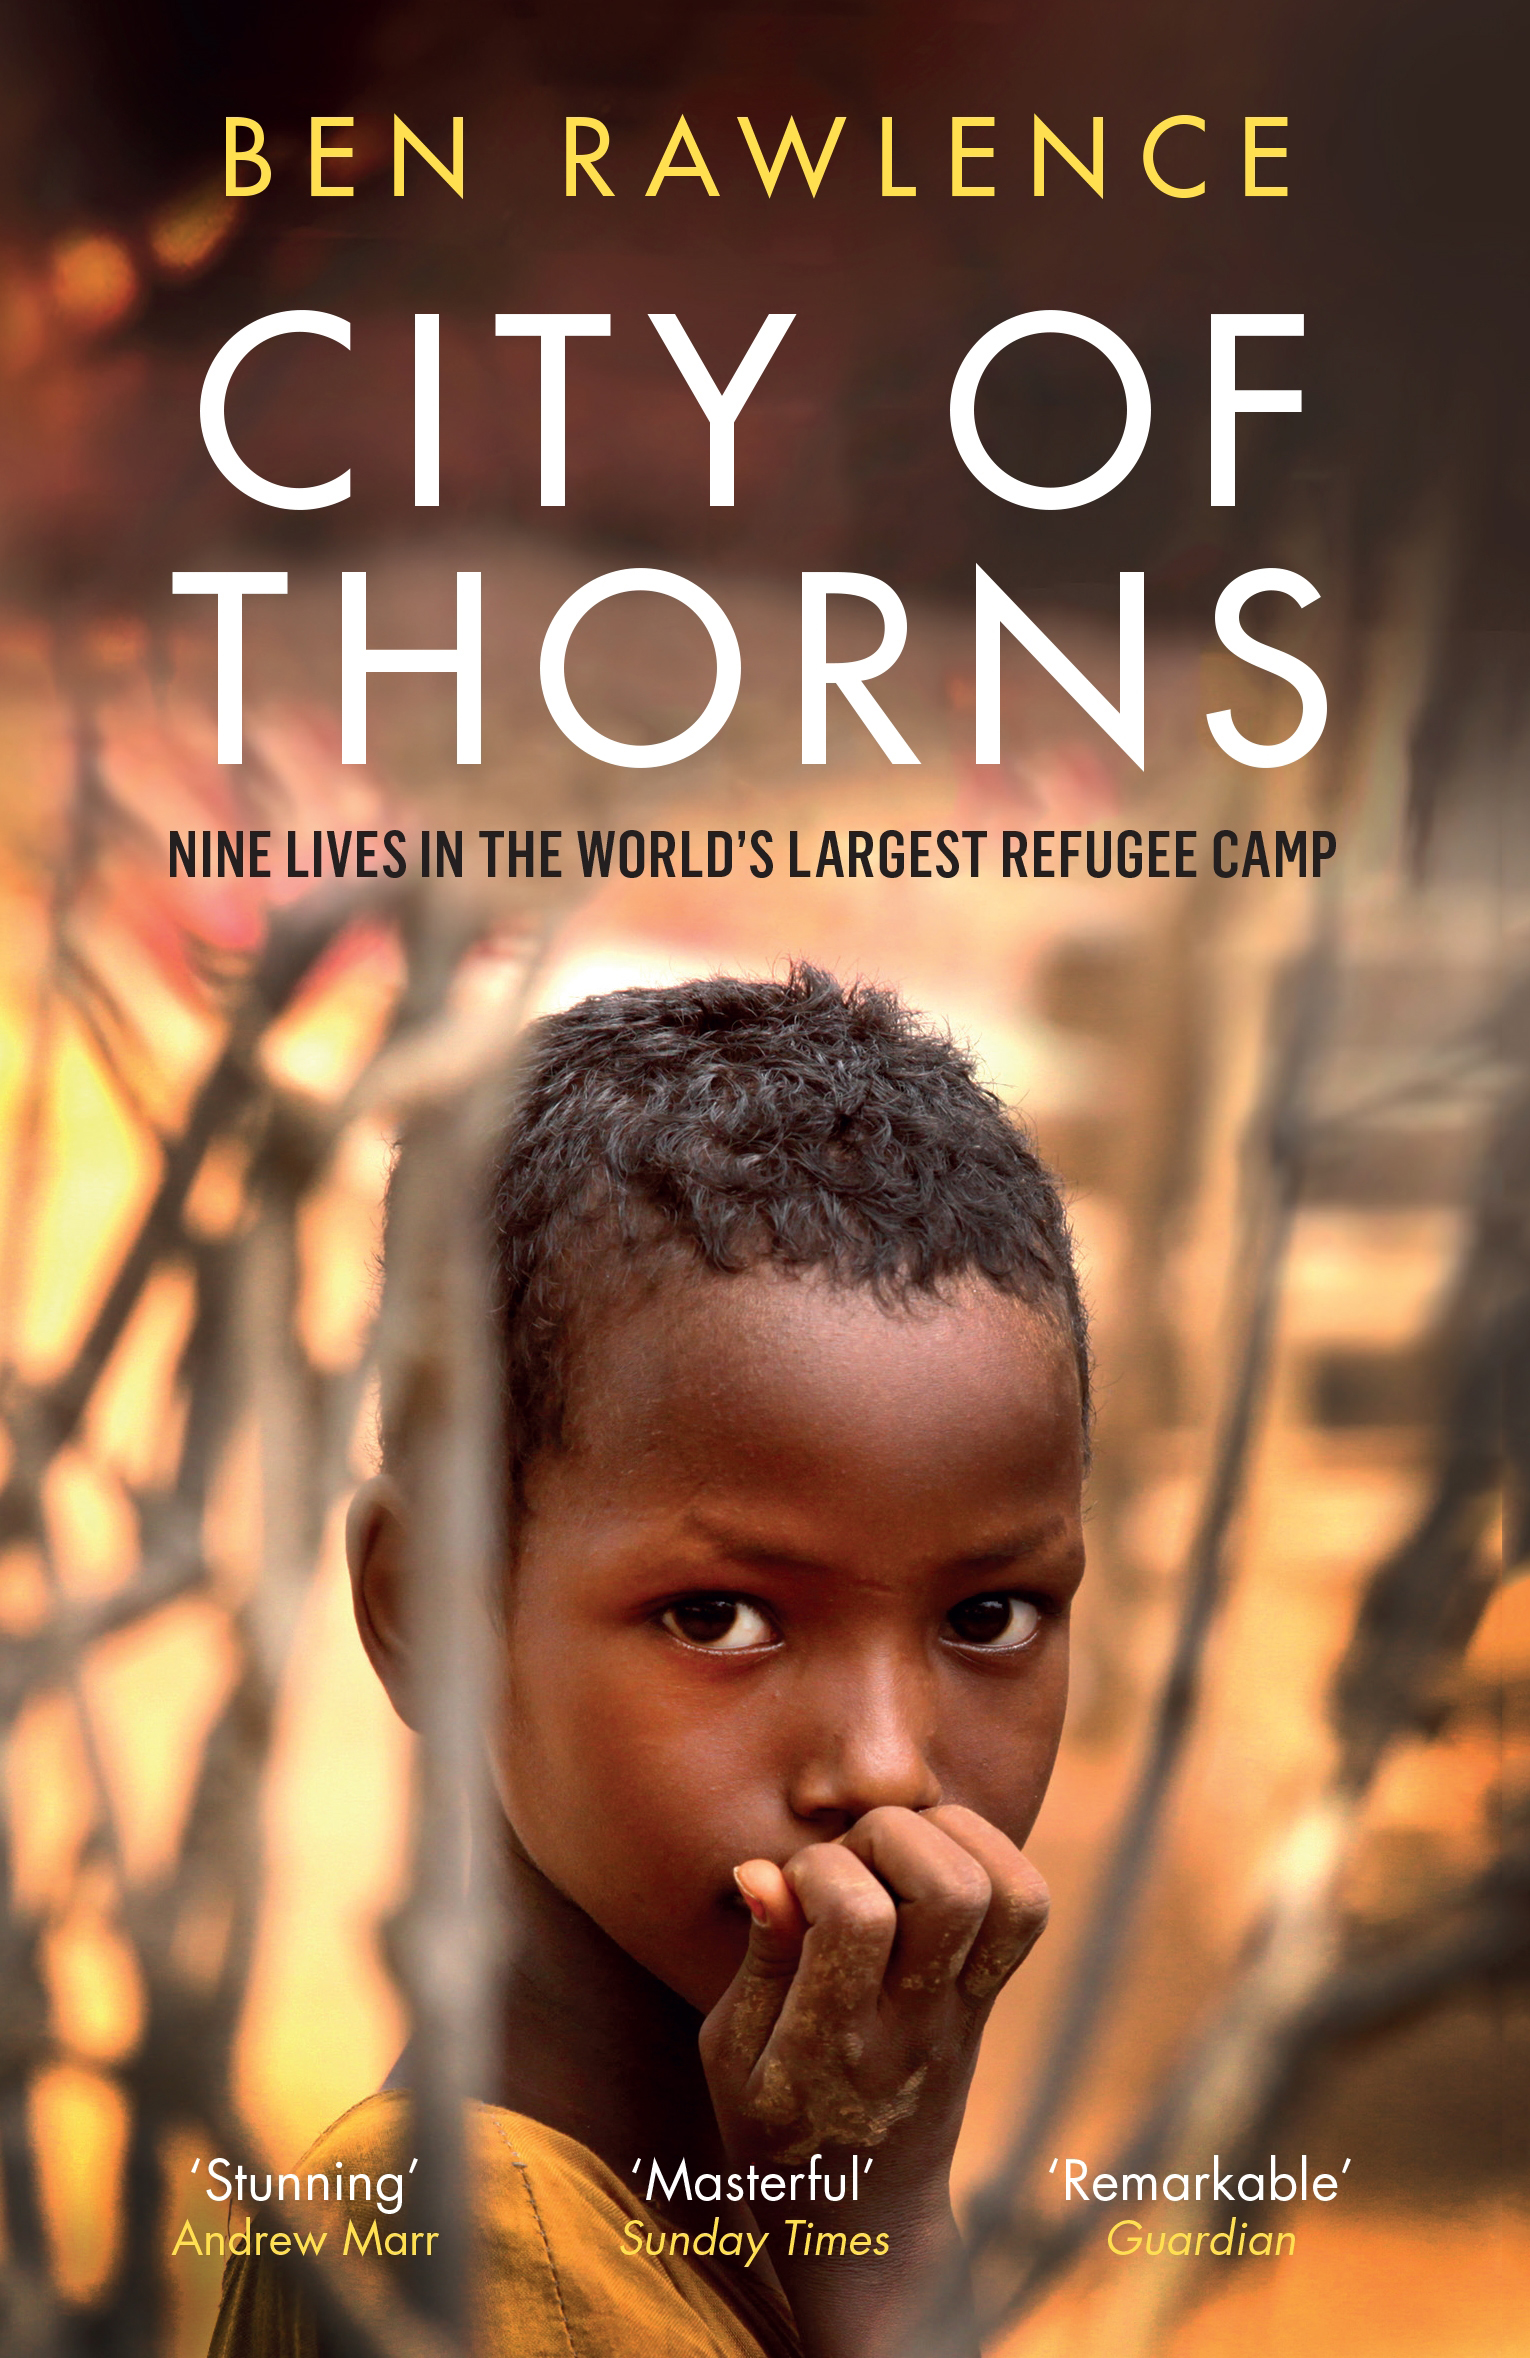 City of Thorns - The Radio 4 book of the week from February 2016. An account of nine interconnected lives in Dadaab, the world's largest refugee camp. One Amazon reviewer called it a story of